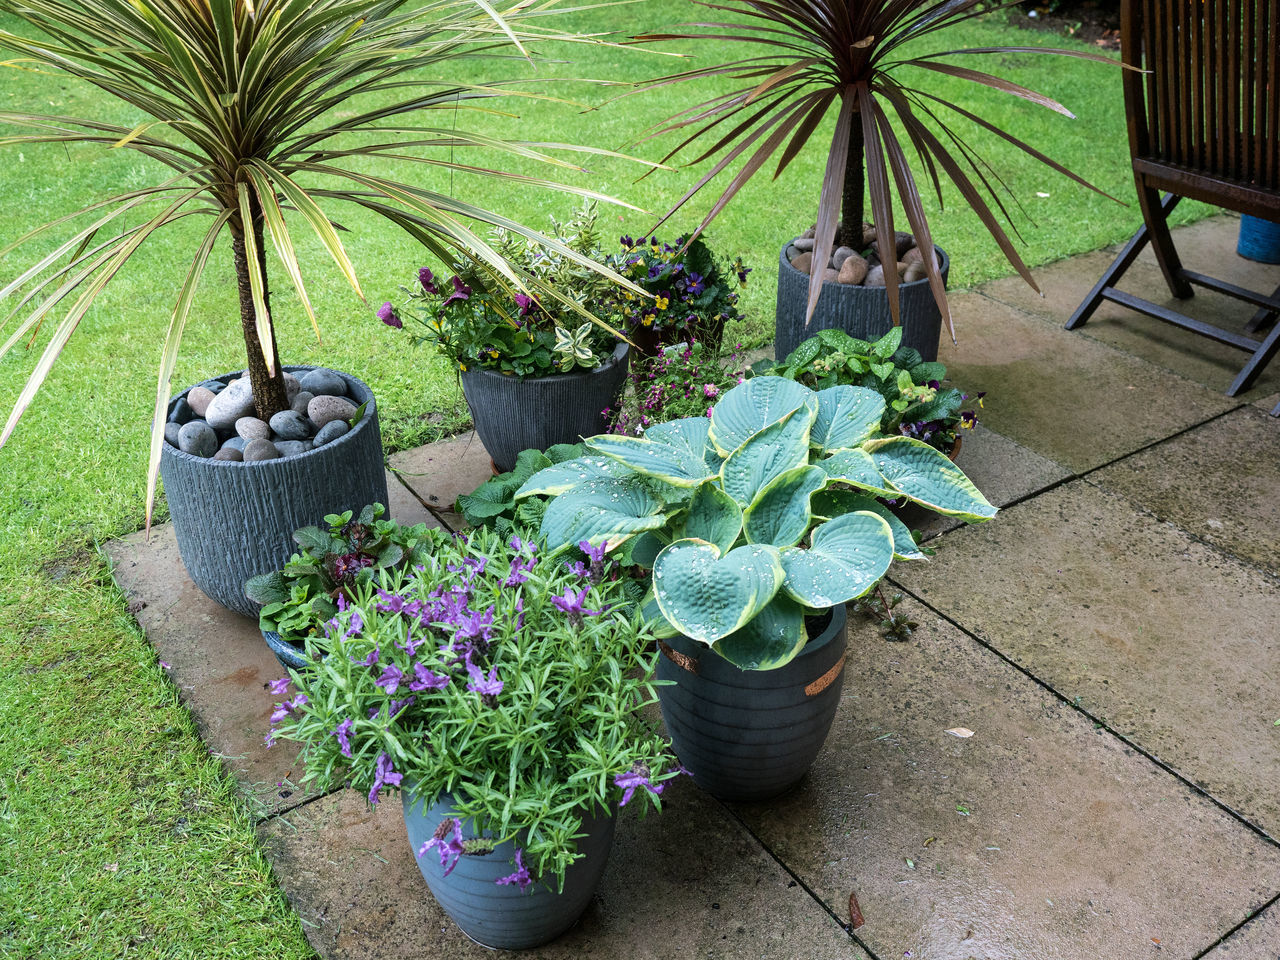 Rain Beauty In Nature Day Flower Freshness Green Color Growth High Angle View Nature No People Outdoors Plant Potted Plant Rainy Days Welcome Welcome Rain